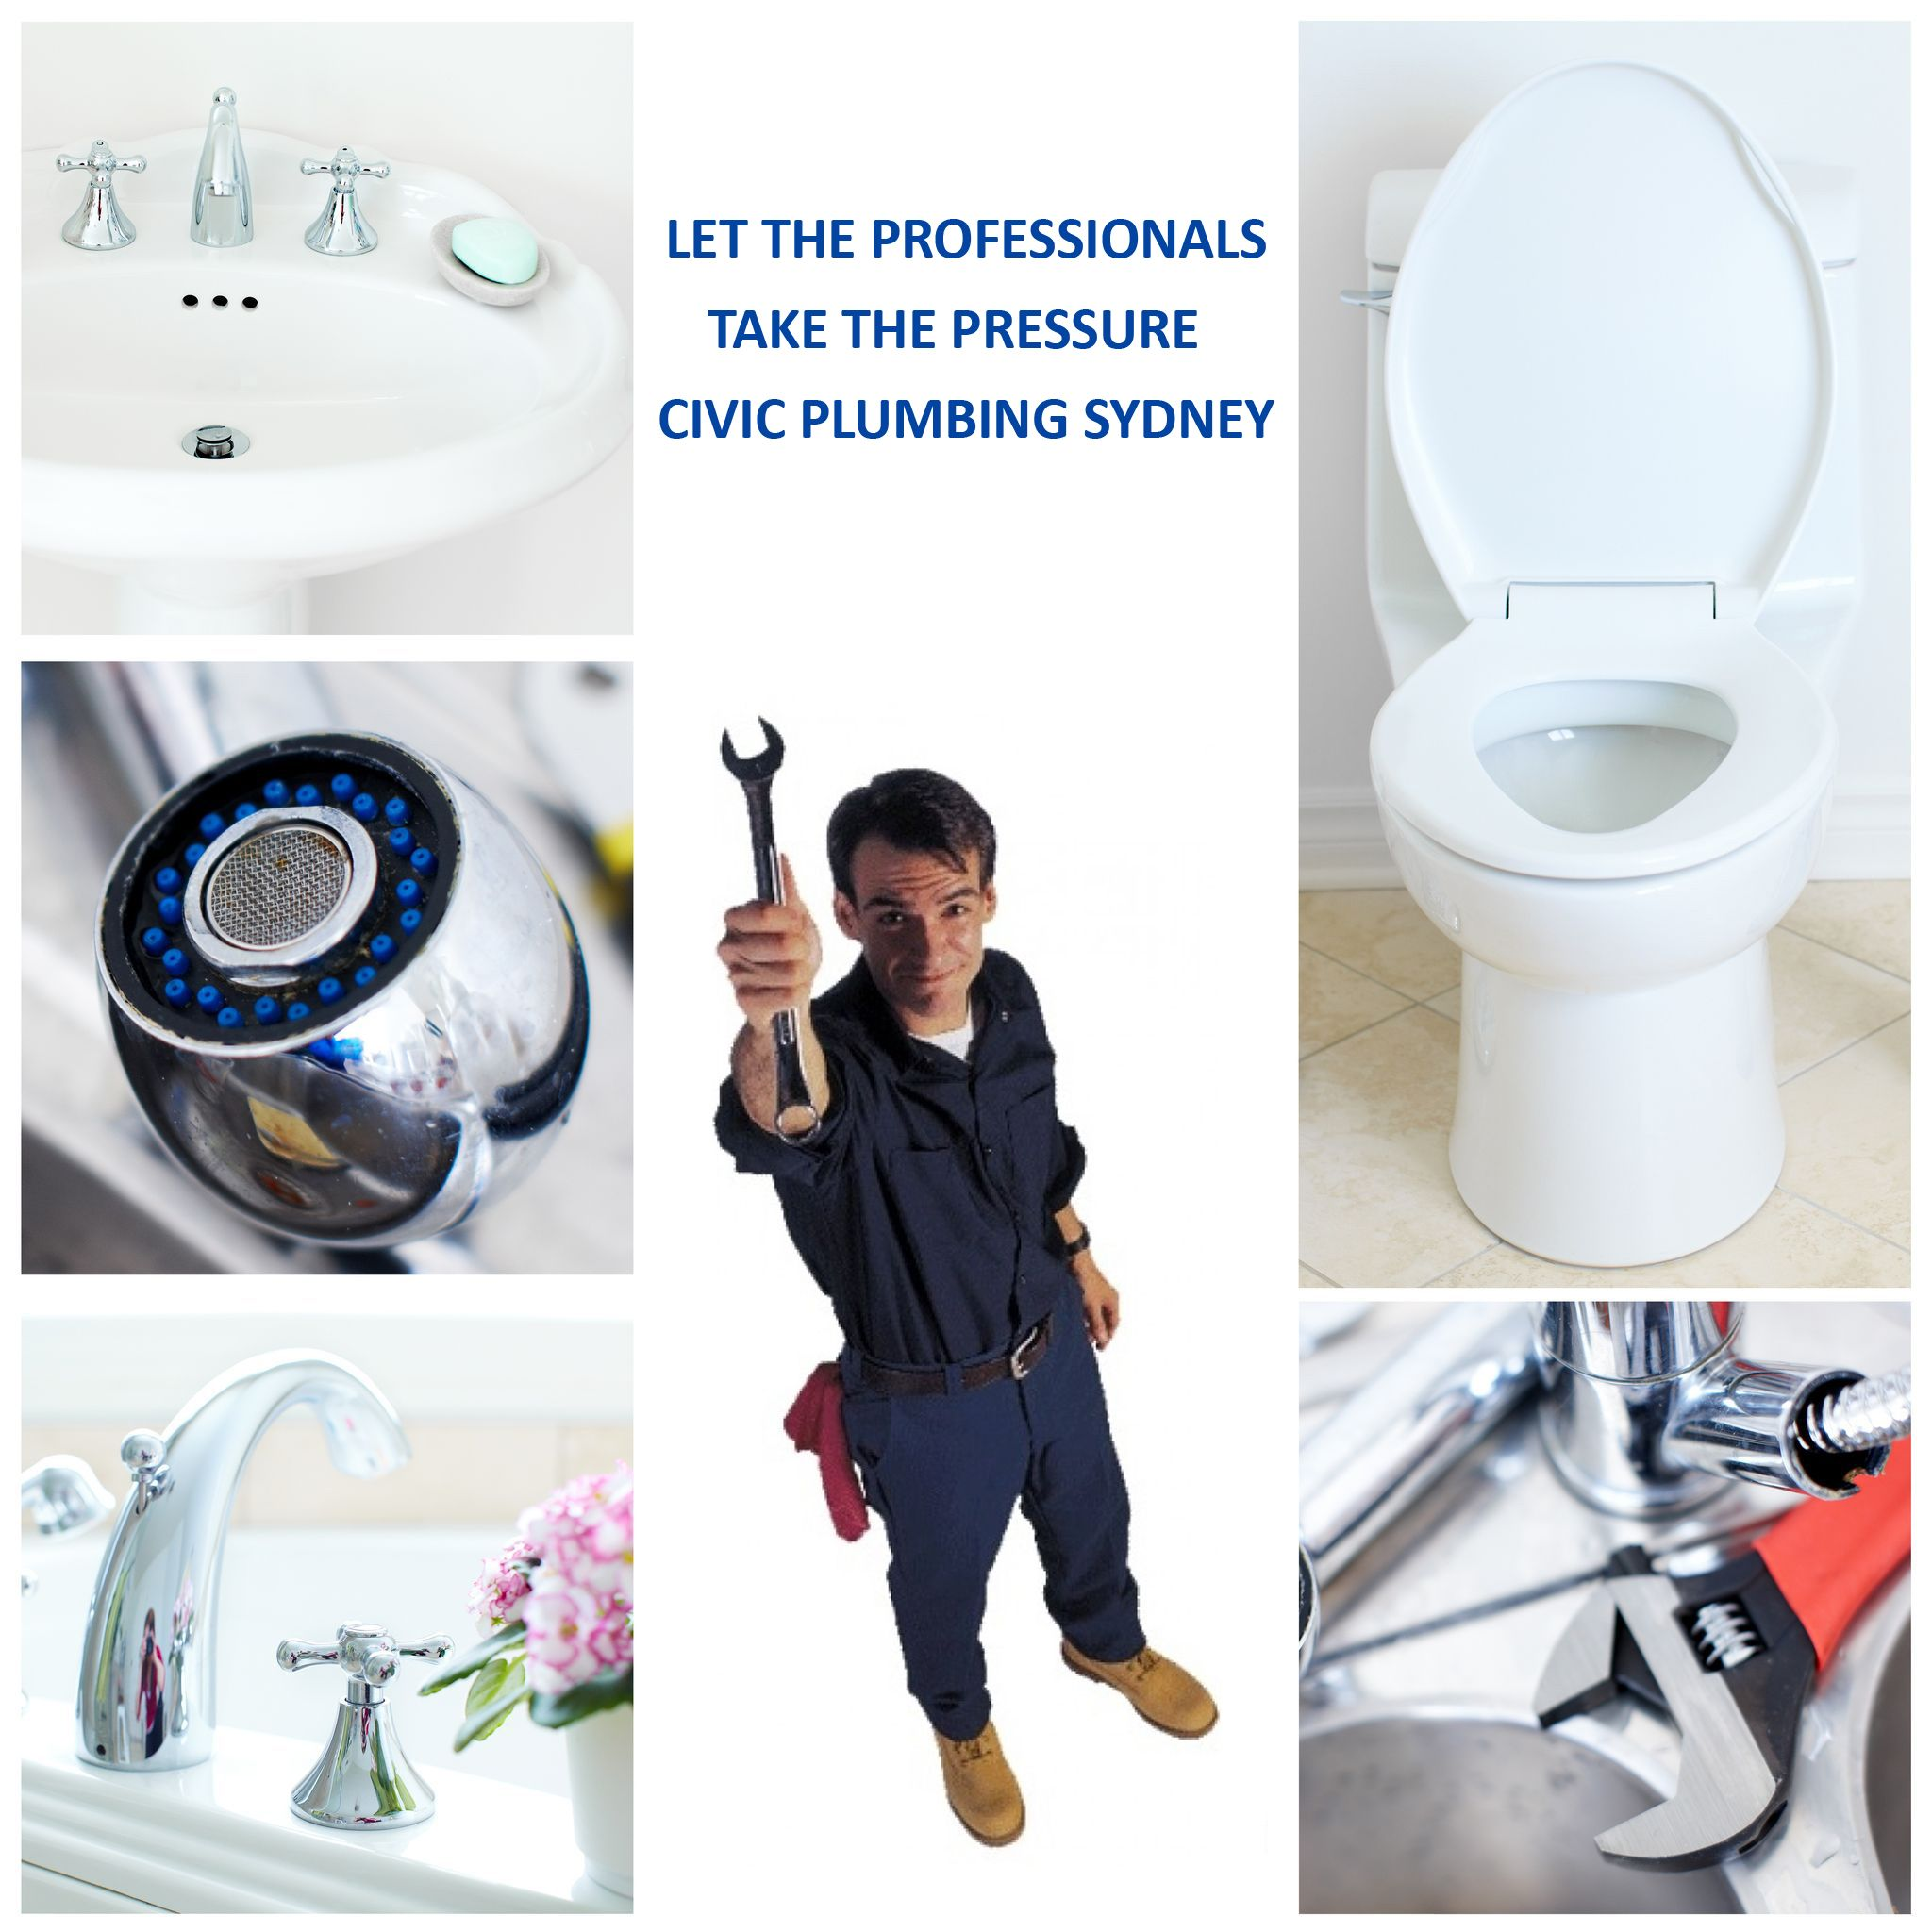 Civic Plumbing's 20 years serving in Sydney make us reliable and we aim to fix your problem quickly and reliably. Call us to keep your home healthy.